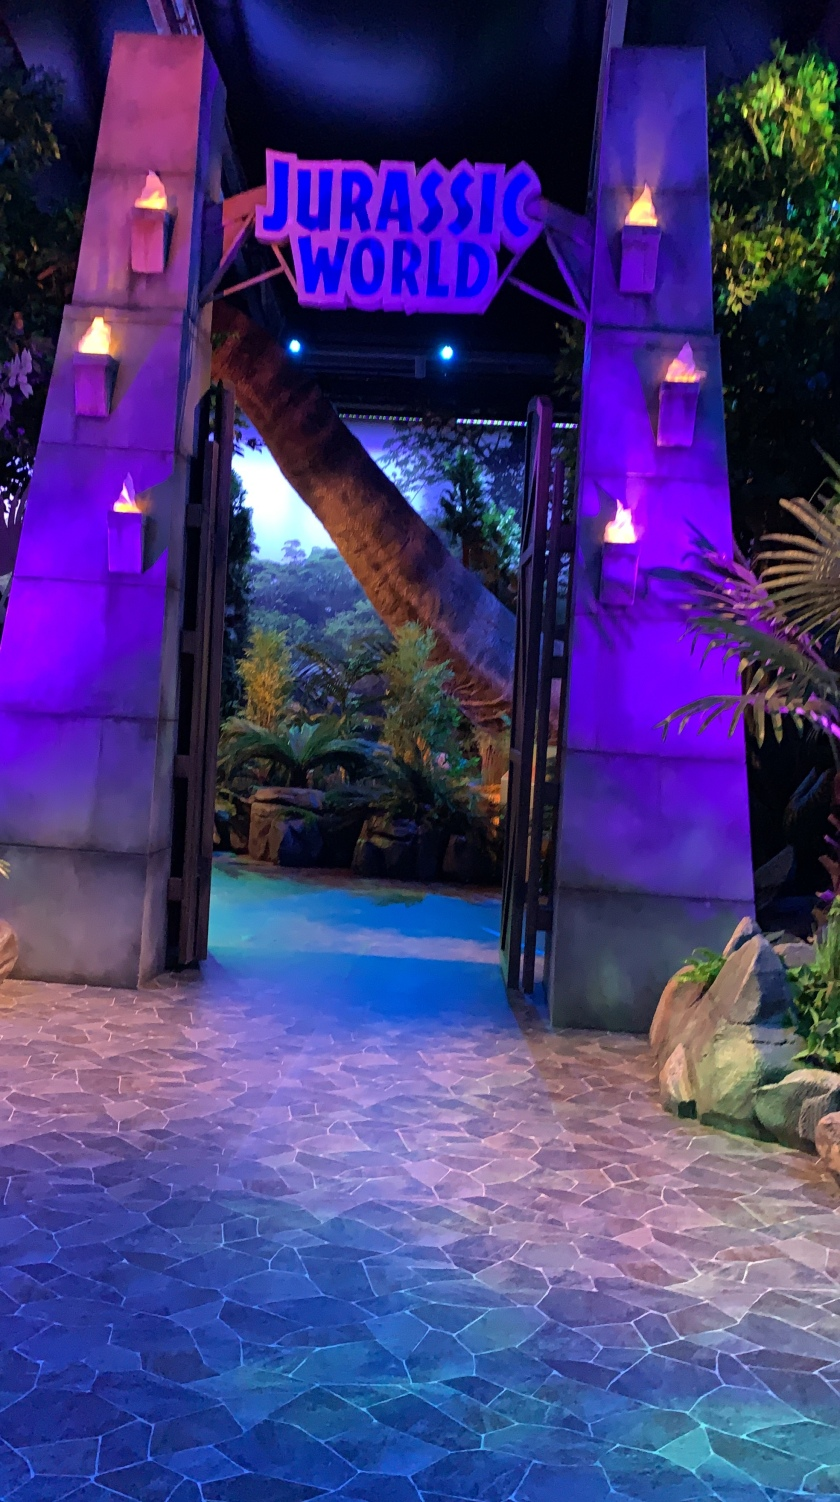 Whynotshopper-jurassic-world-exibition-